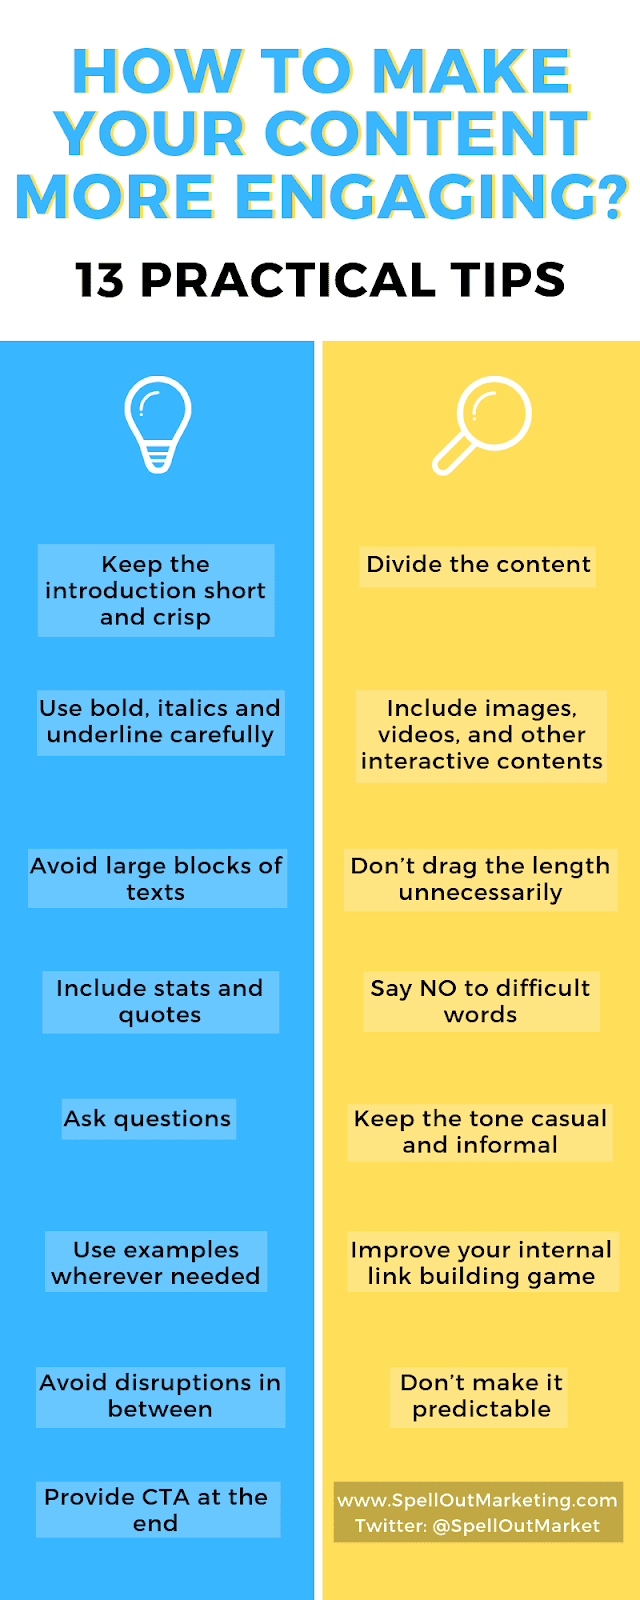 how to make content more engaging on your blog, website using the right types of contents and content strategy